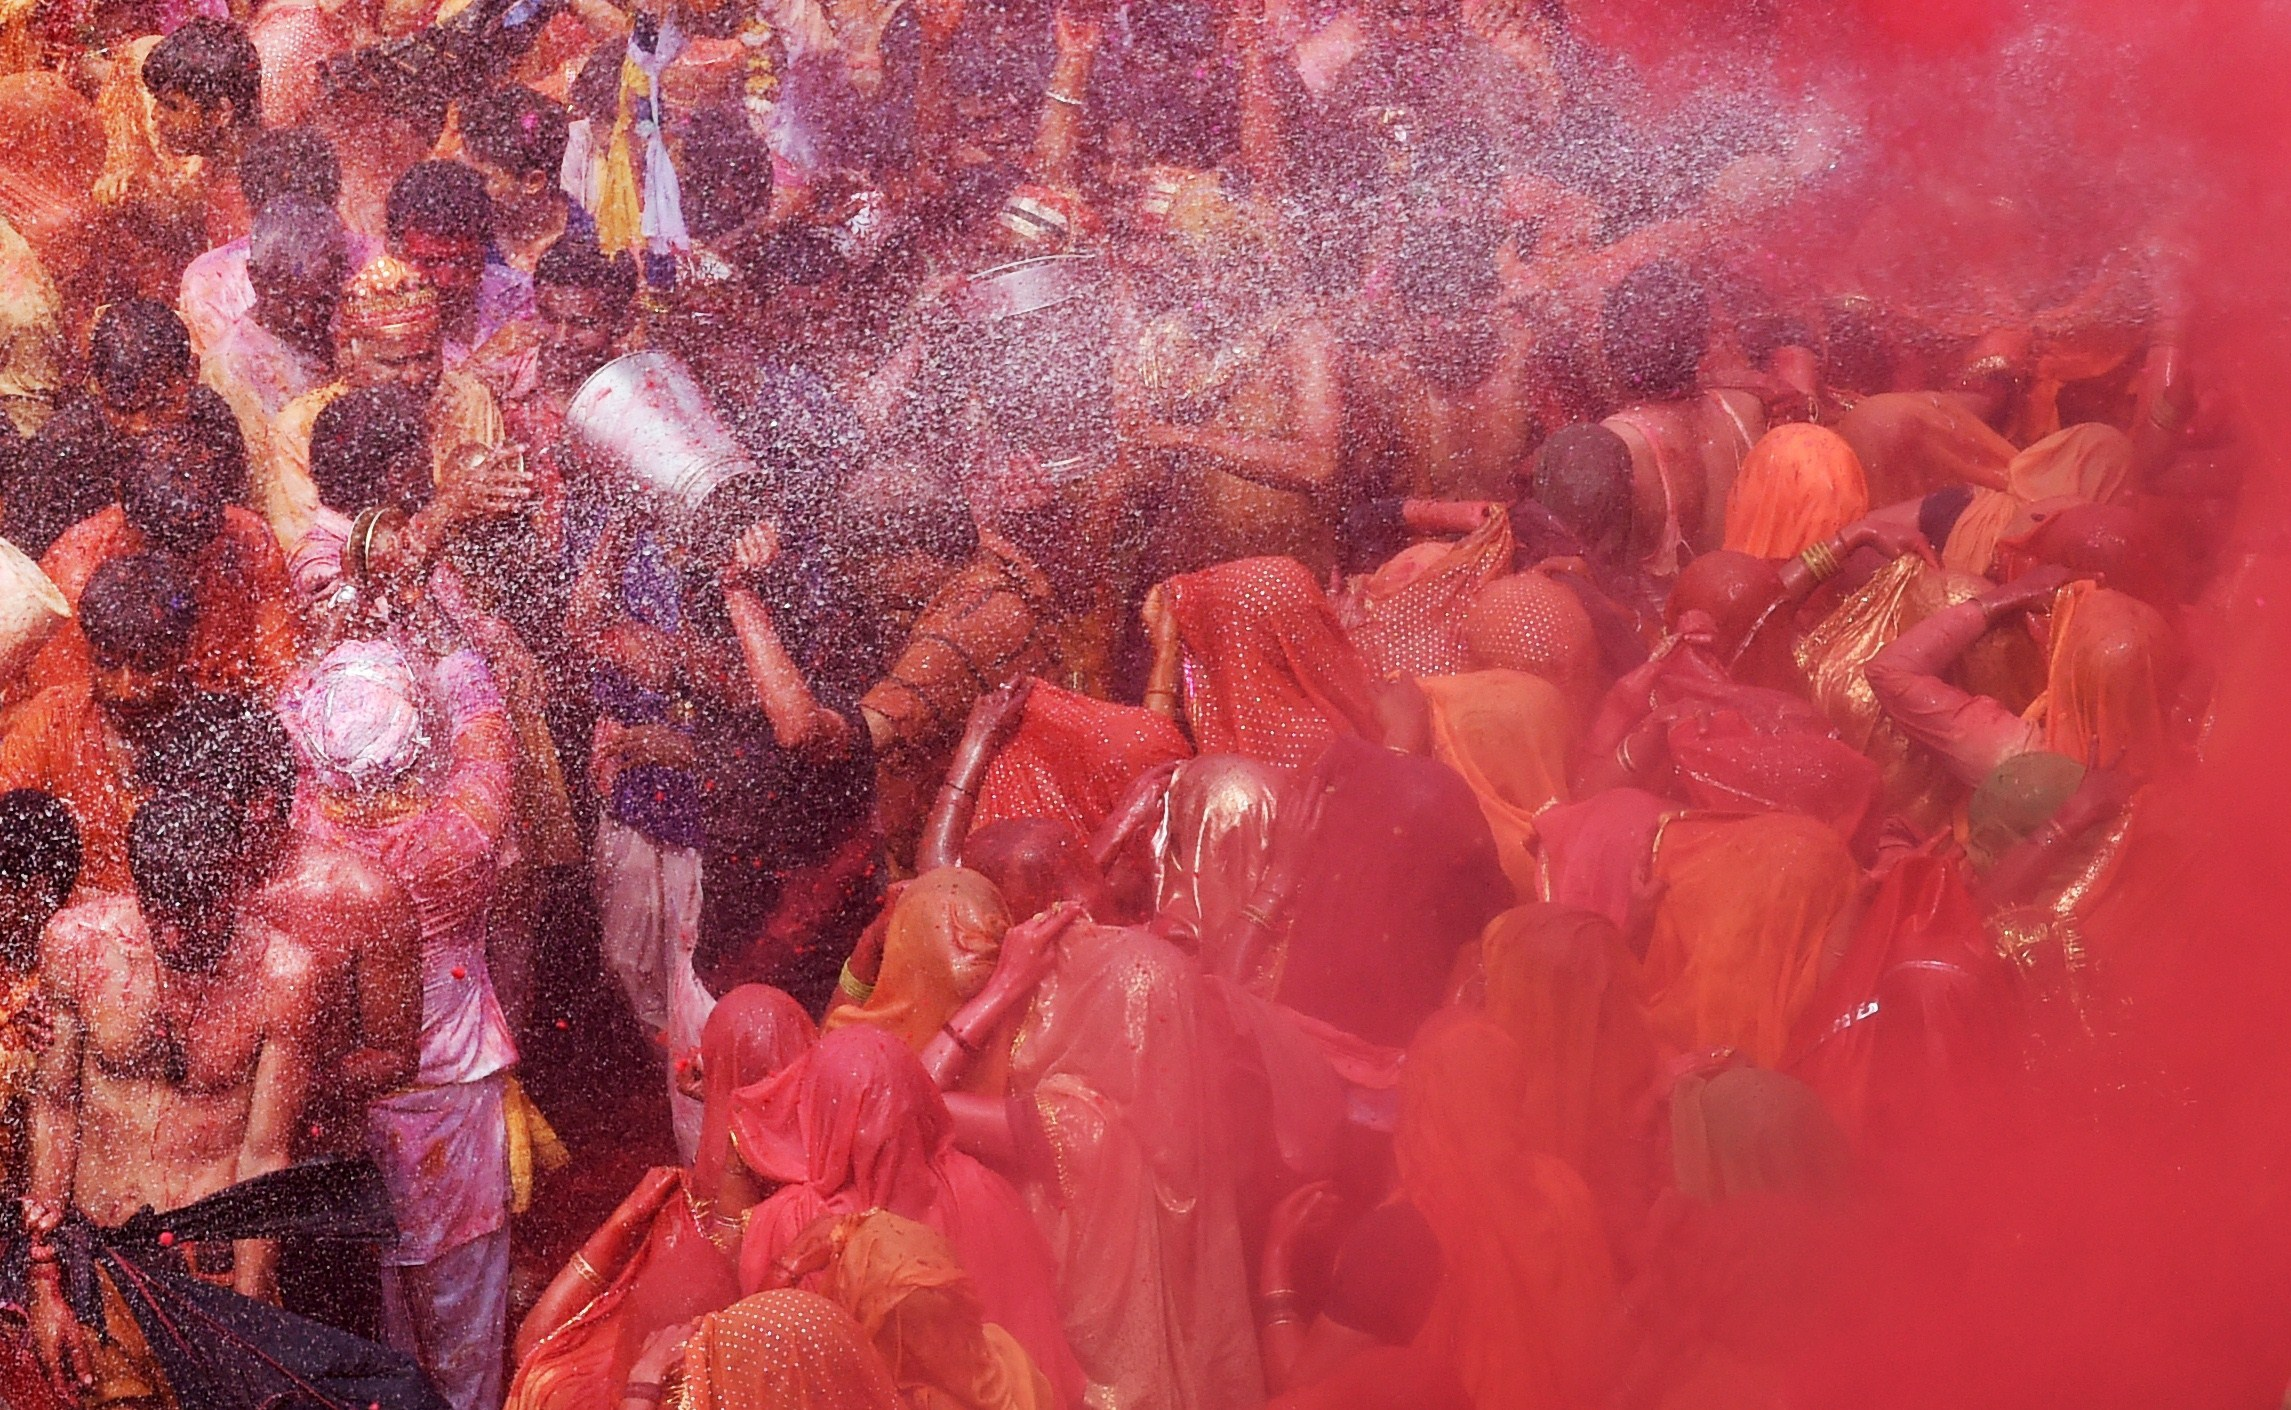 Indian men and women participate in the Dadjee ka Huranga festivities in a hindu temple in the north Indian town of Baldeo on March 7, 2015. Photo by ROBERTO SCHMIDT/AFP/Getty Images.